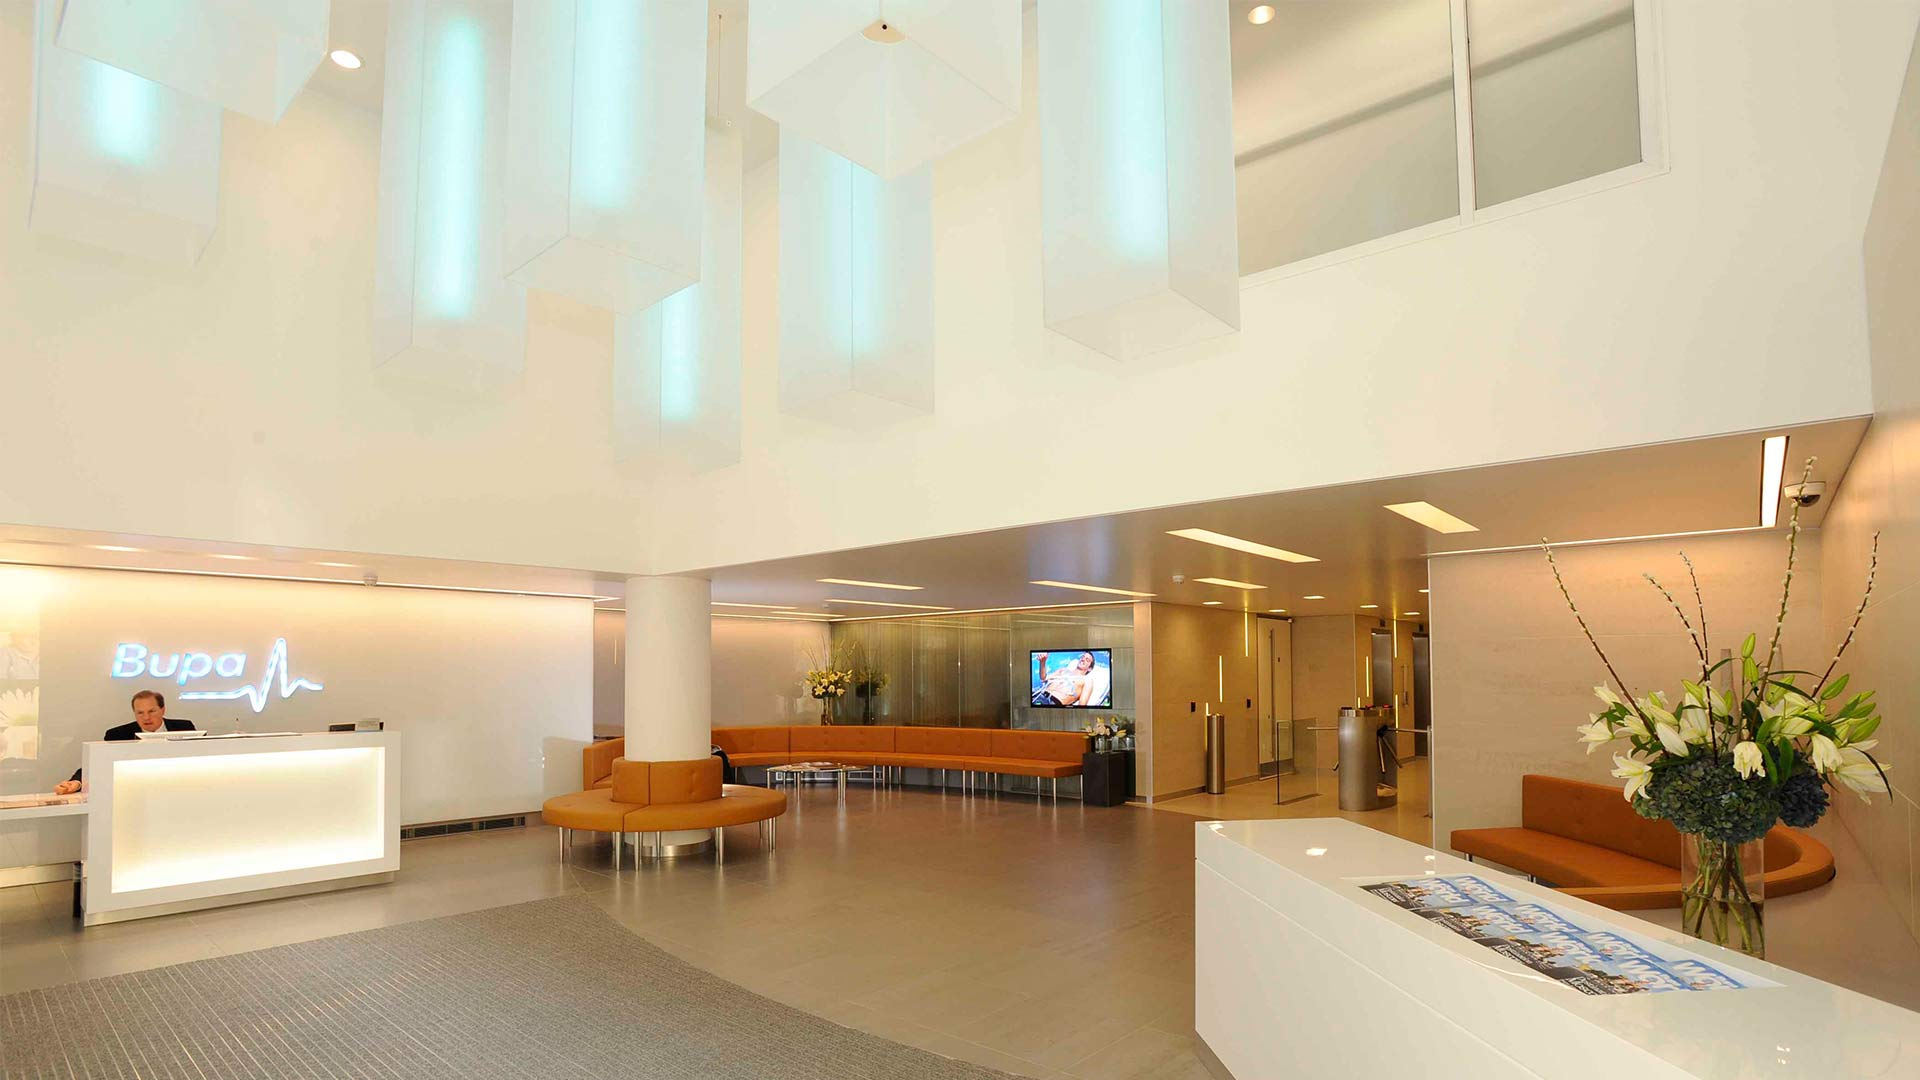 Office Foyer Lighting : Bupa headquarters nulty lighting design consultants